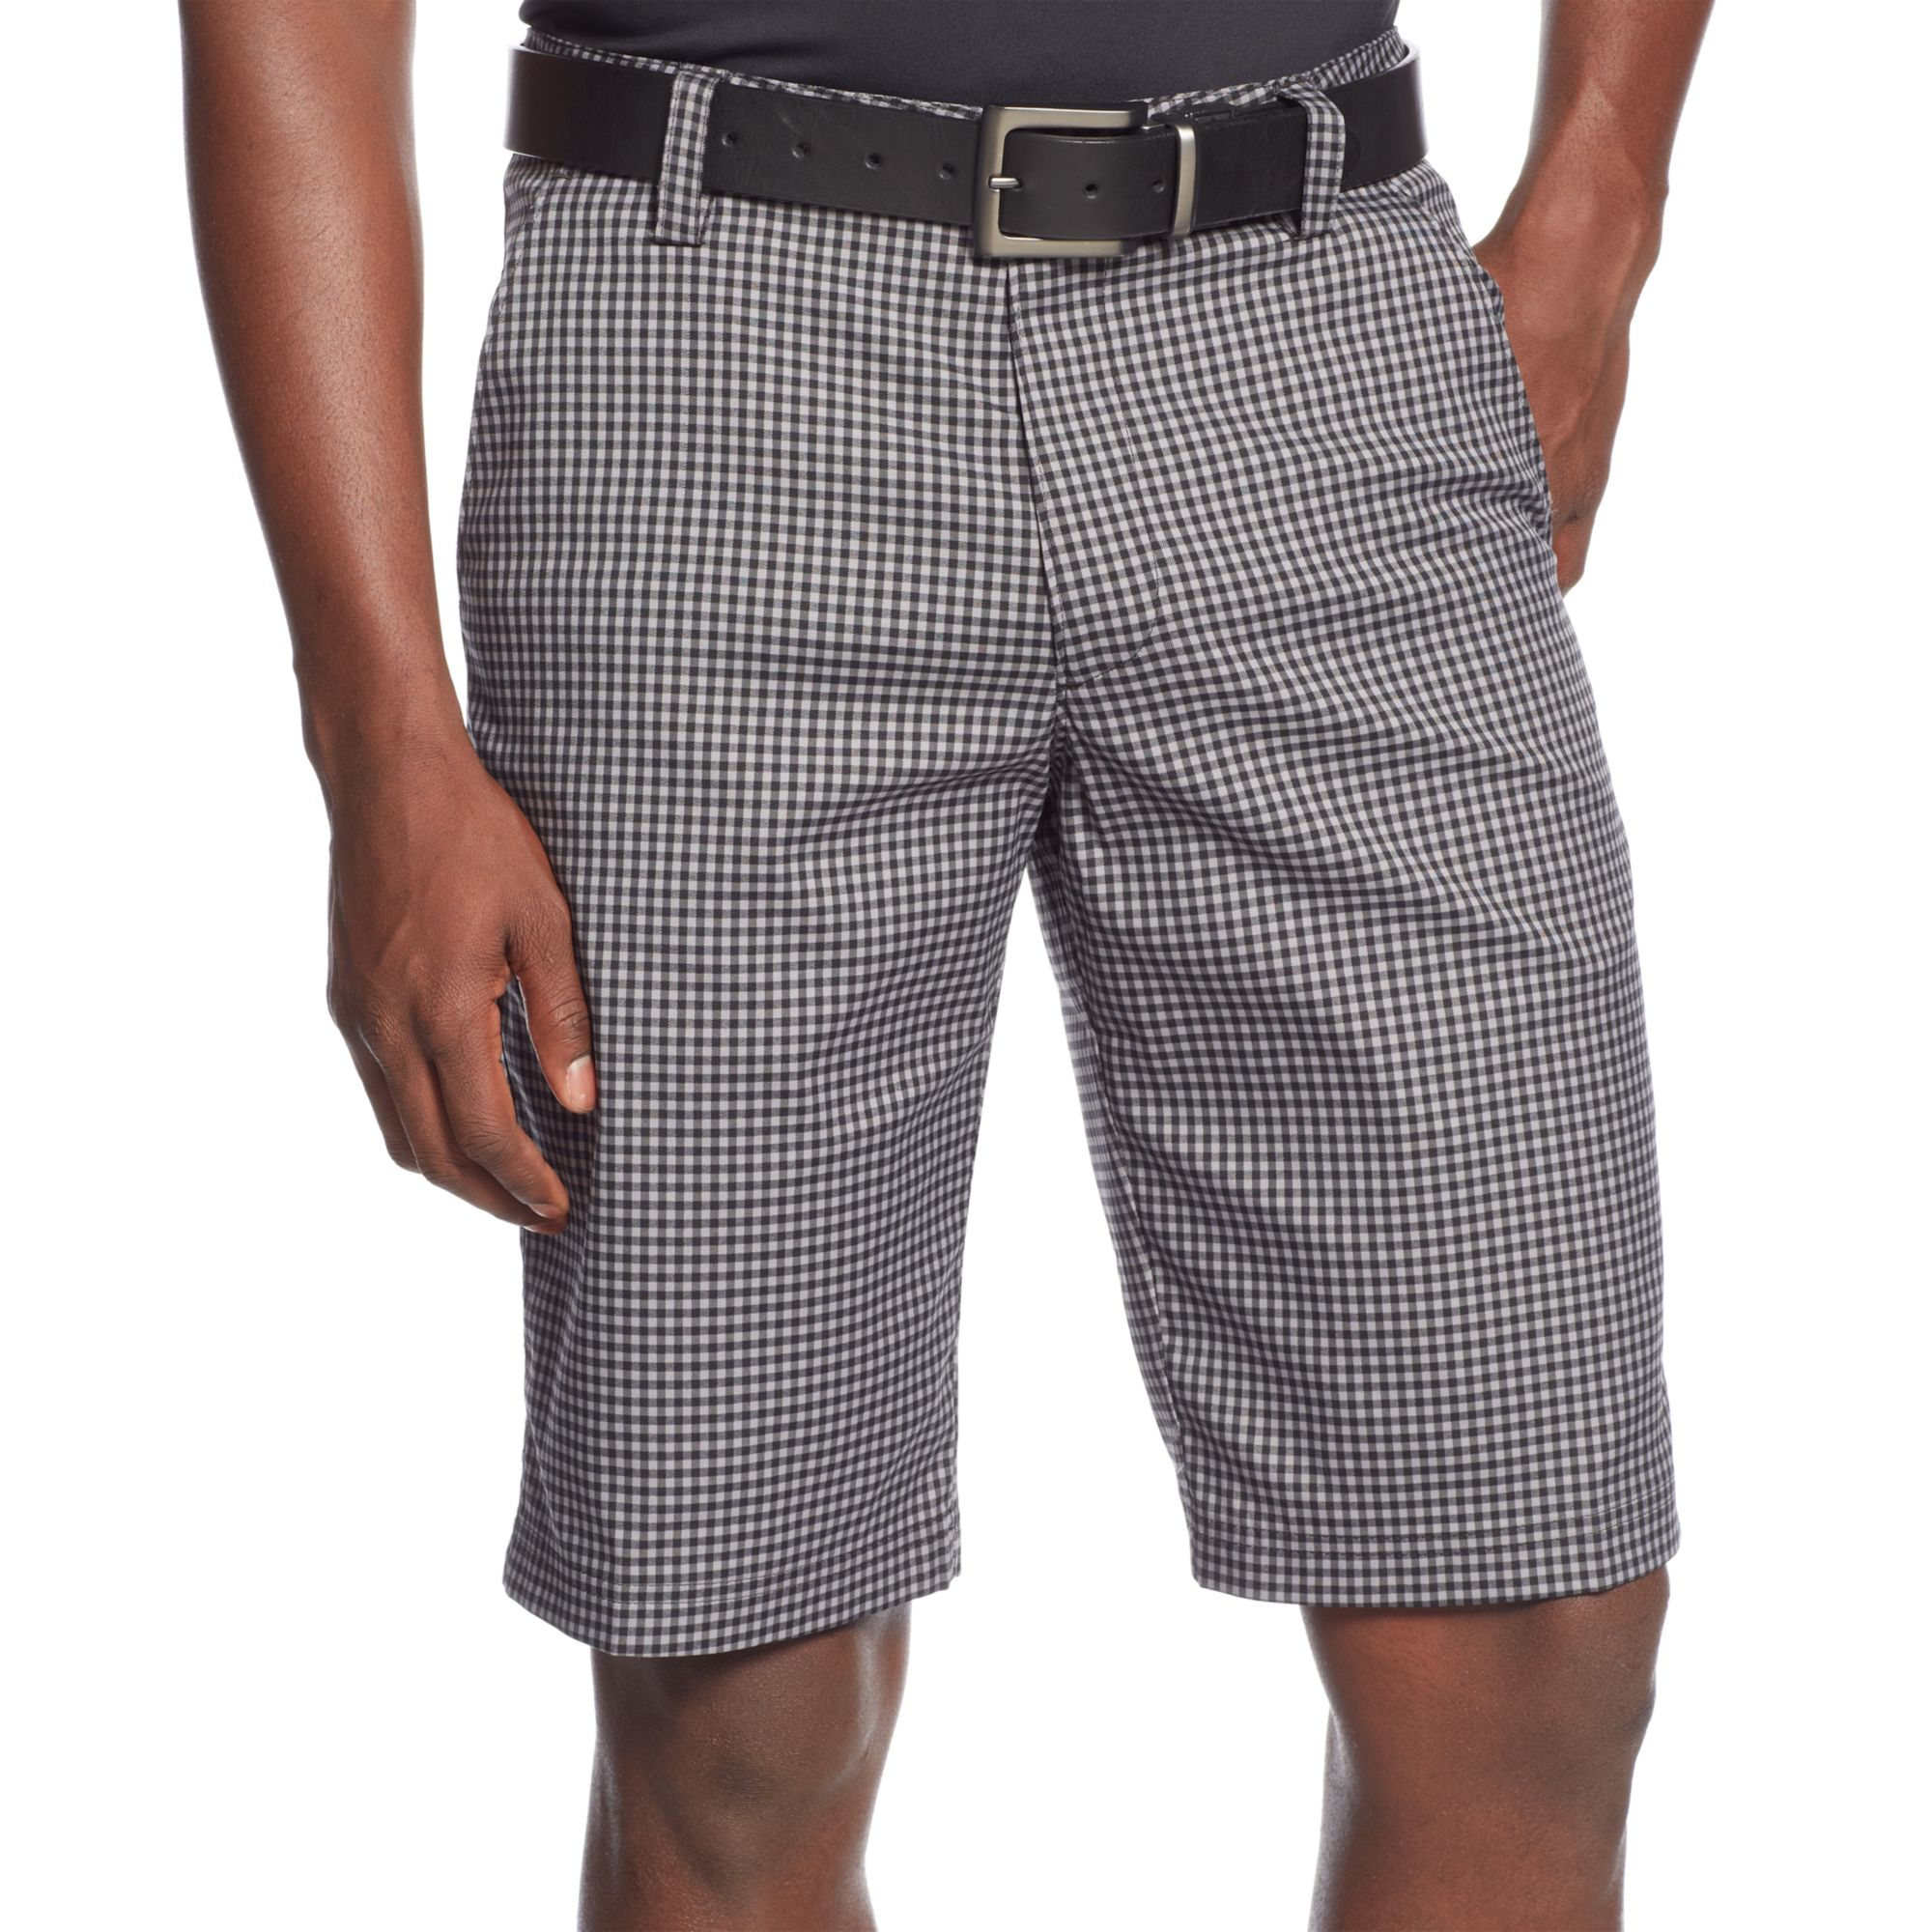 Lyst - Under Armour Gingham Check Golf Shorts in White for Men